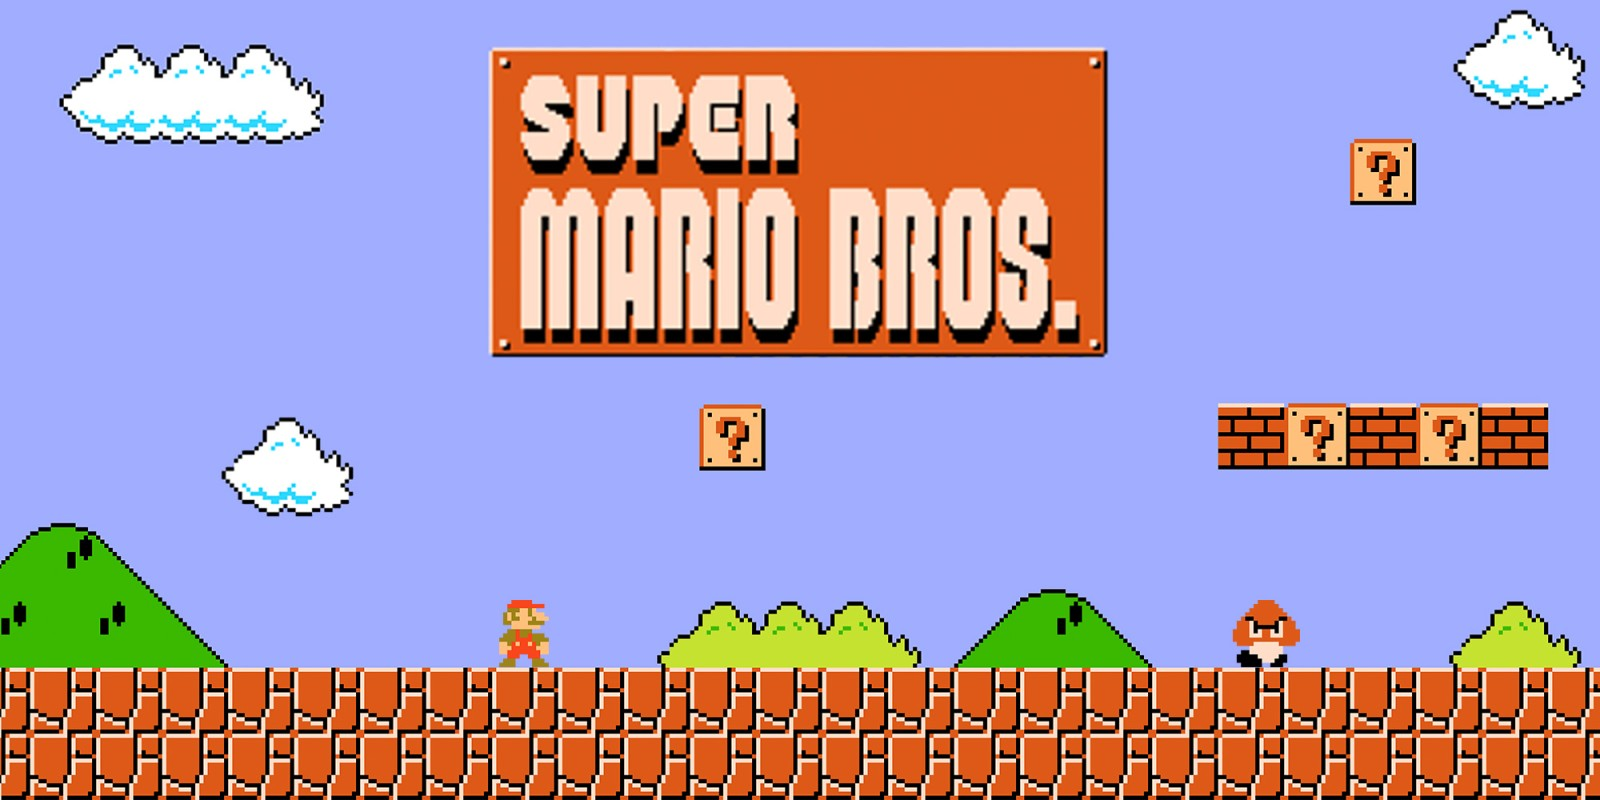 Super Mario Bros. the most expensive game ever sold at $100,000+